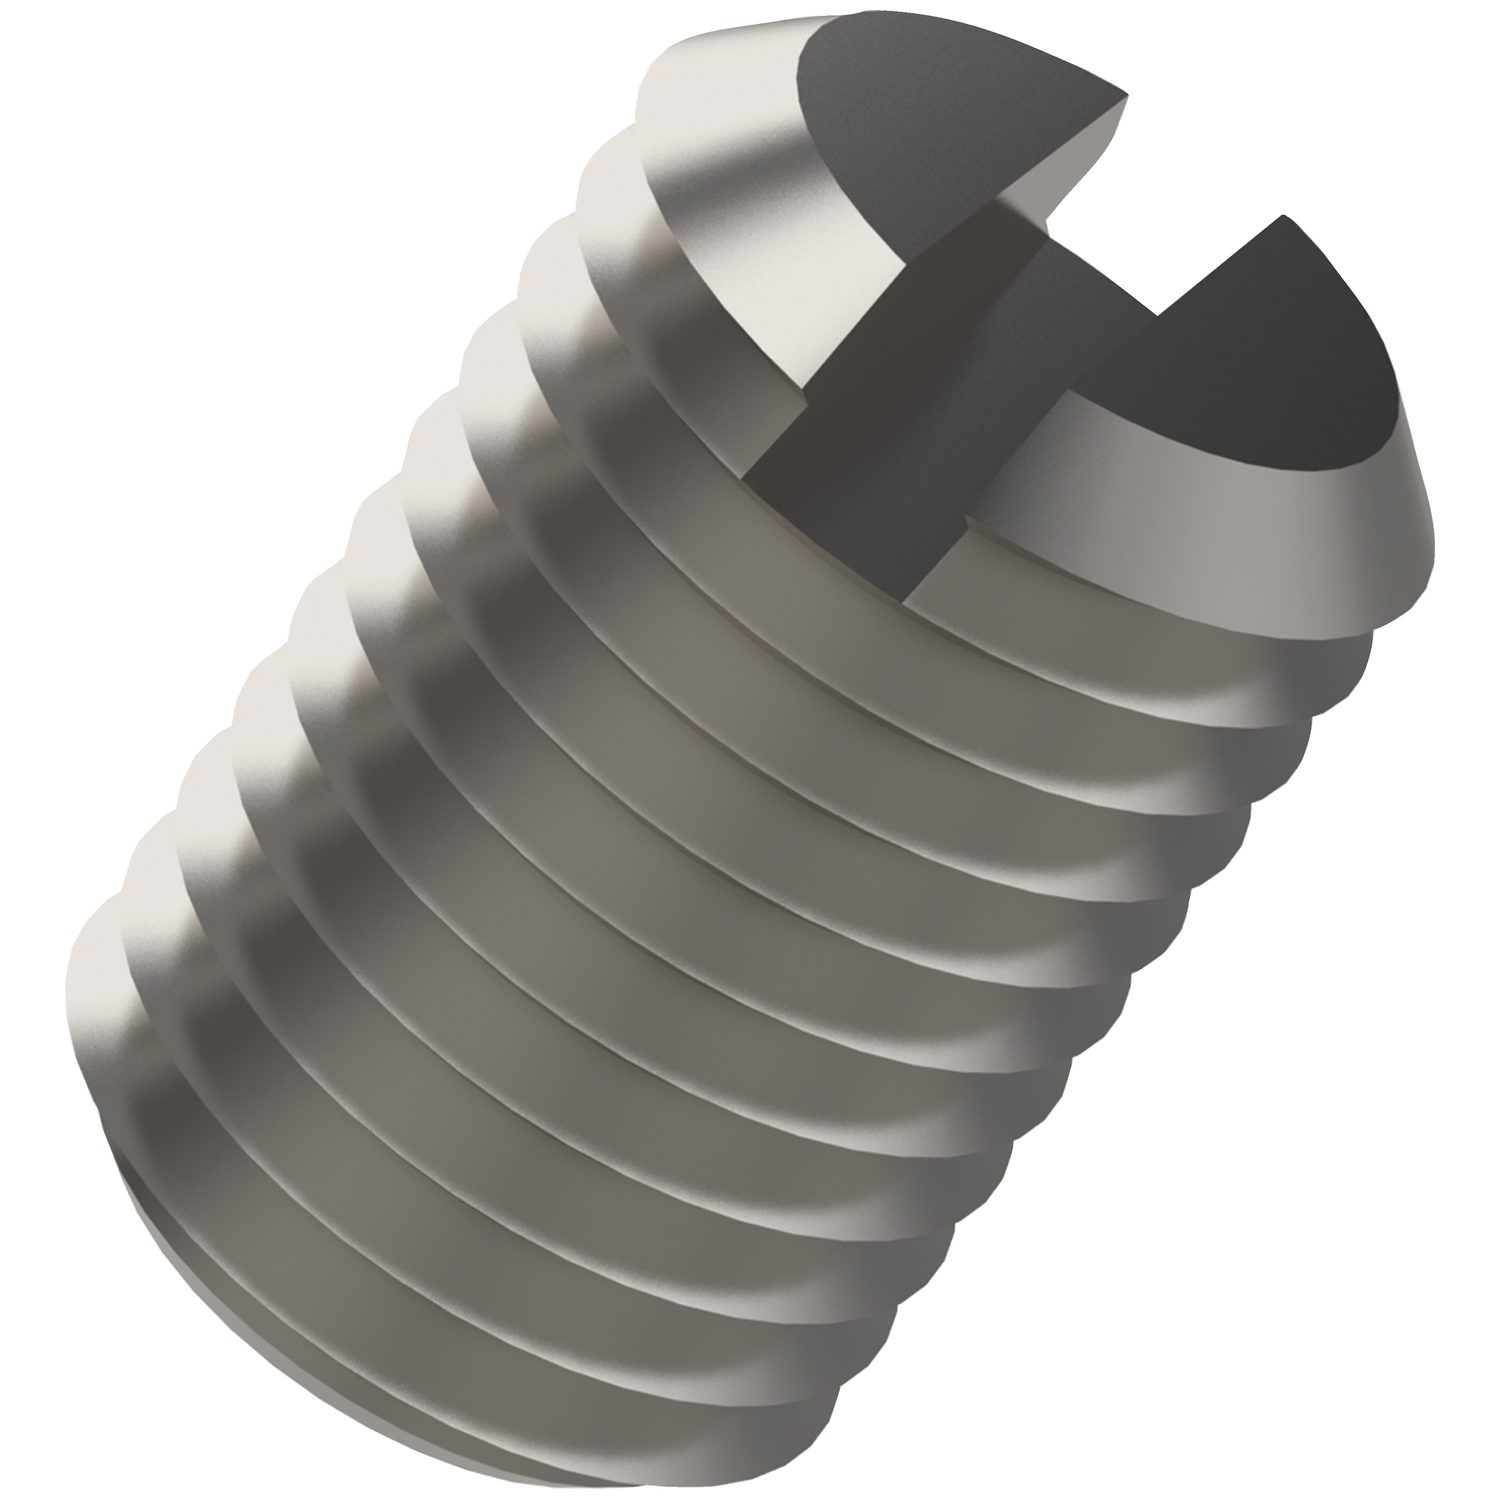 P0277.A2 - Slotted Set Screws Flat Point